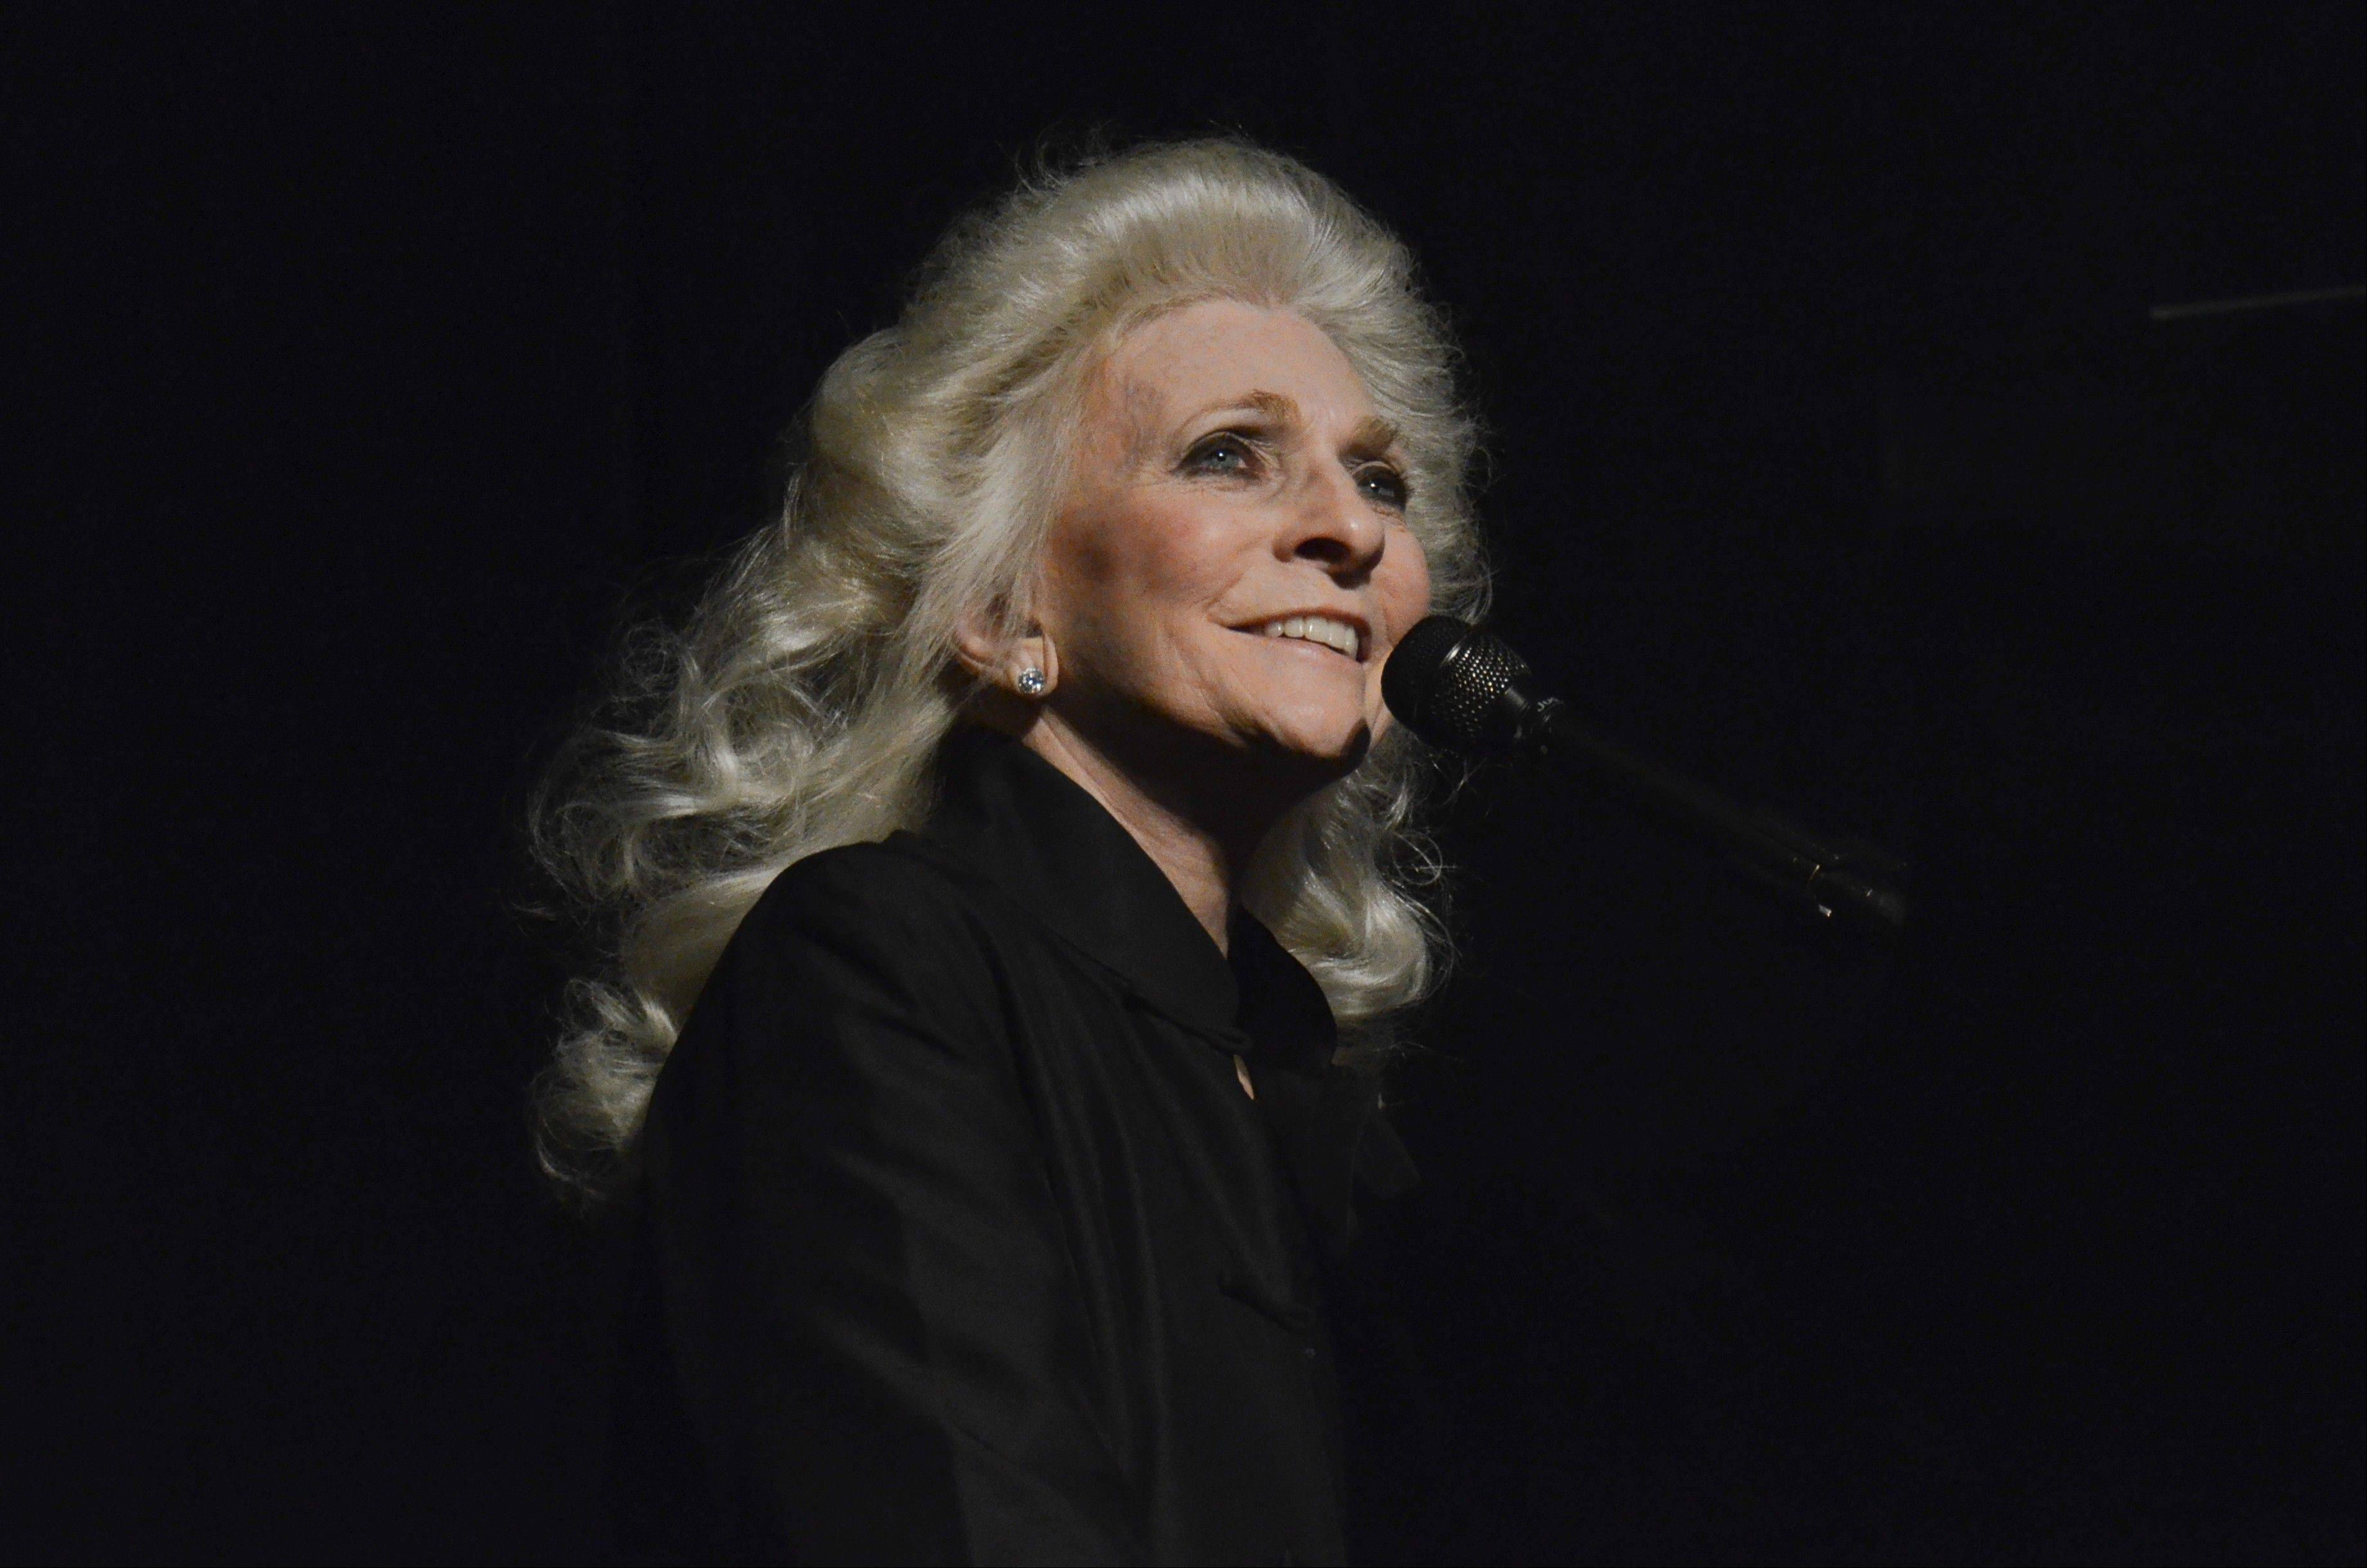 Songwriter Judy Collins performs on the same bill as Don McLean at the Arcada Theatre in St. Charles.